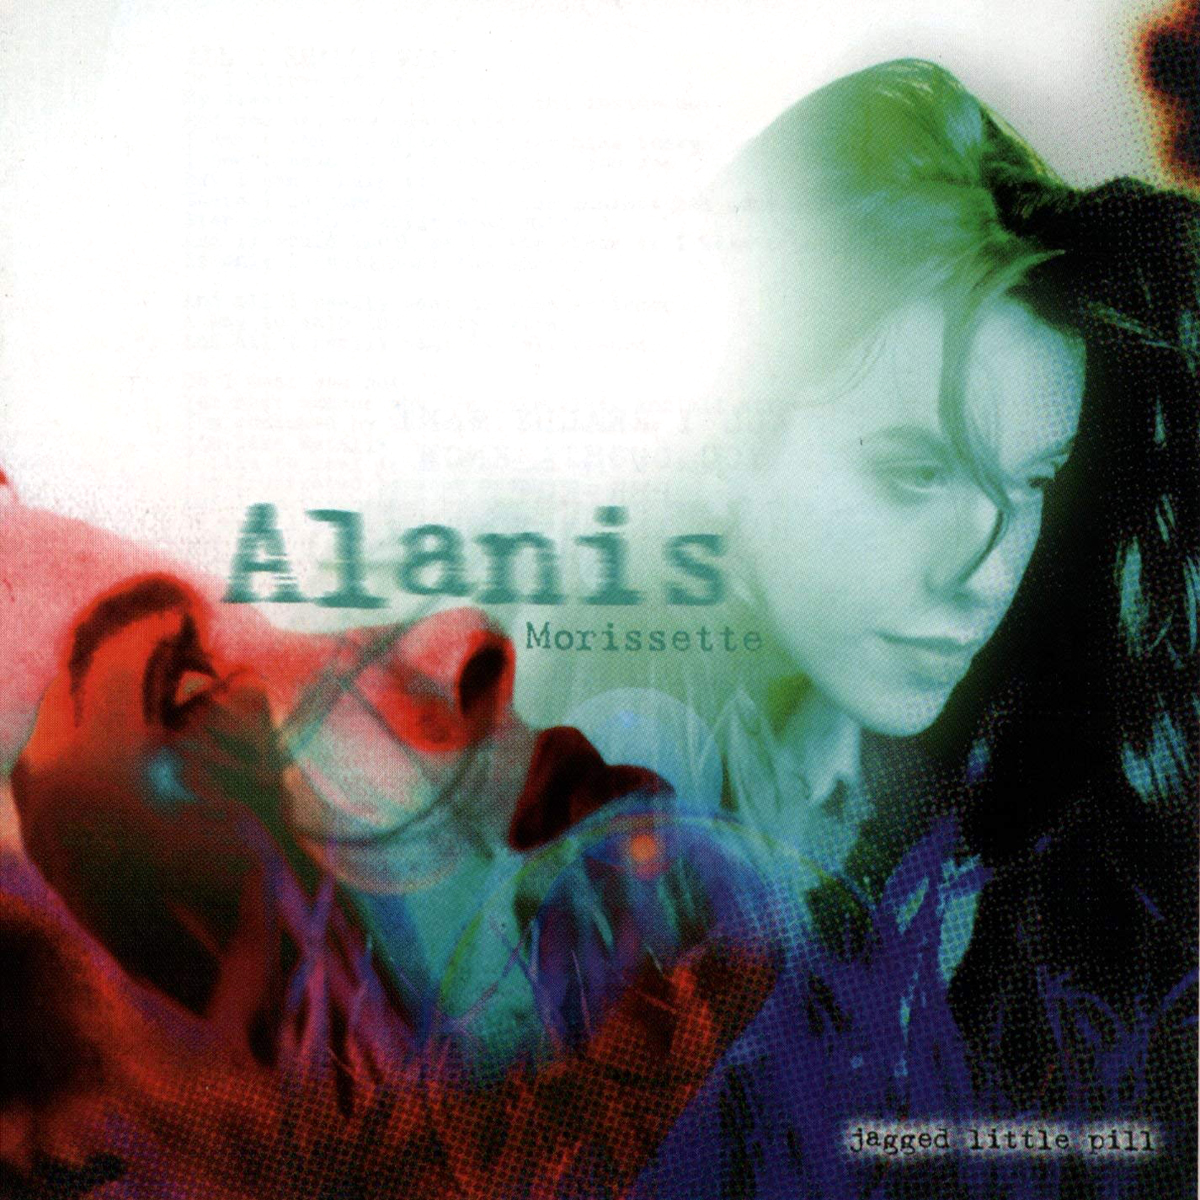 Alanis MorissetteÕs Jagged Little Pill album cover